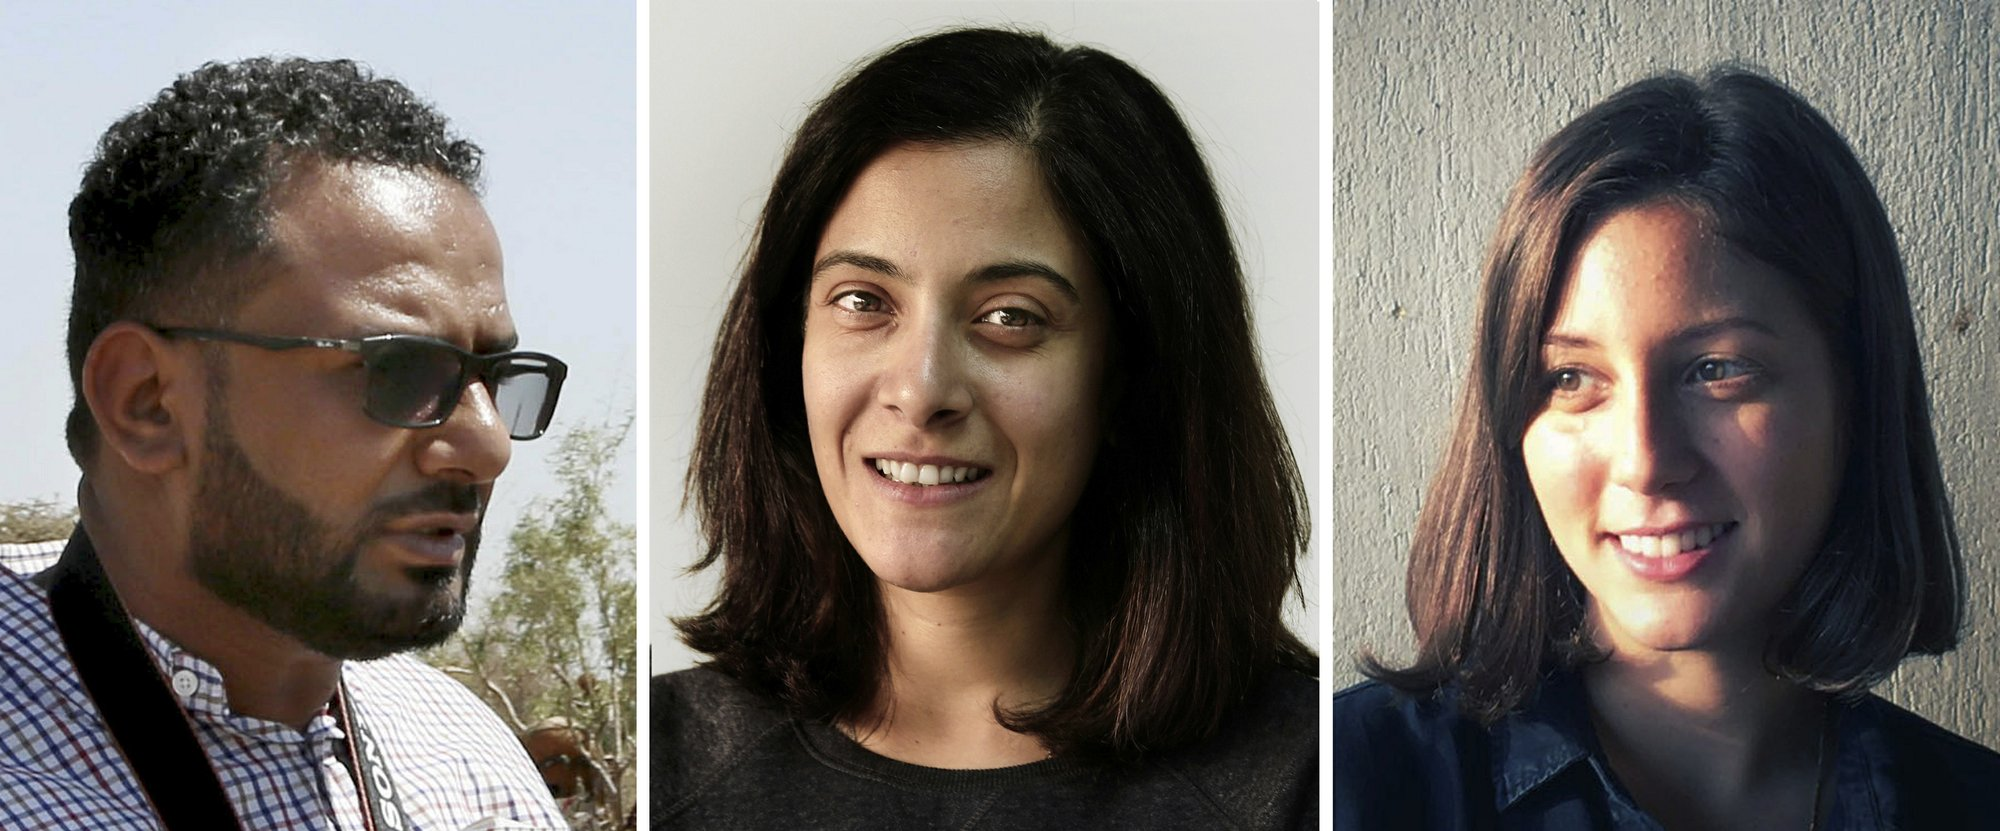 Egypt's Maggie Michael and Nariman El-Mofty win Pulitzer Prize for coverage of Yemen war